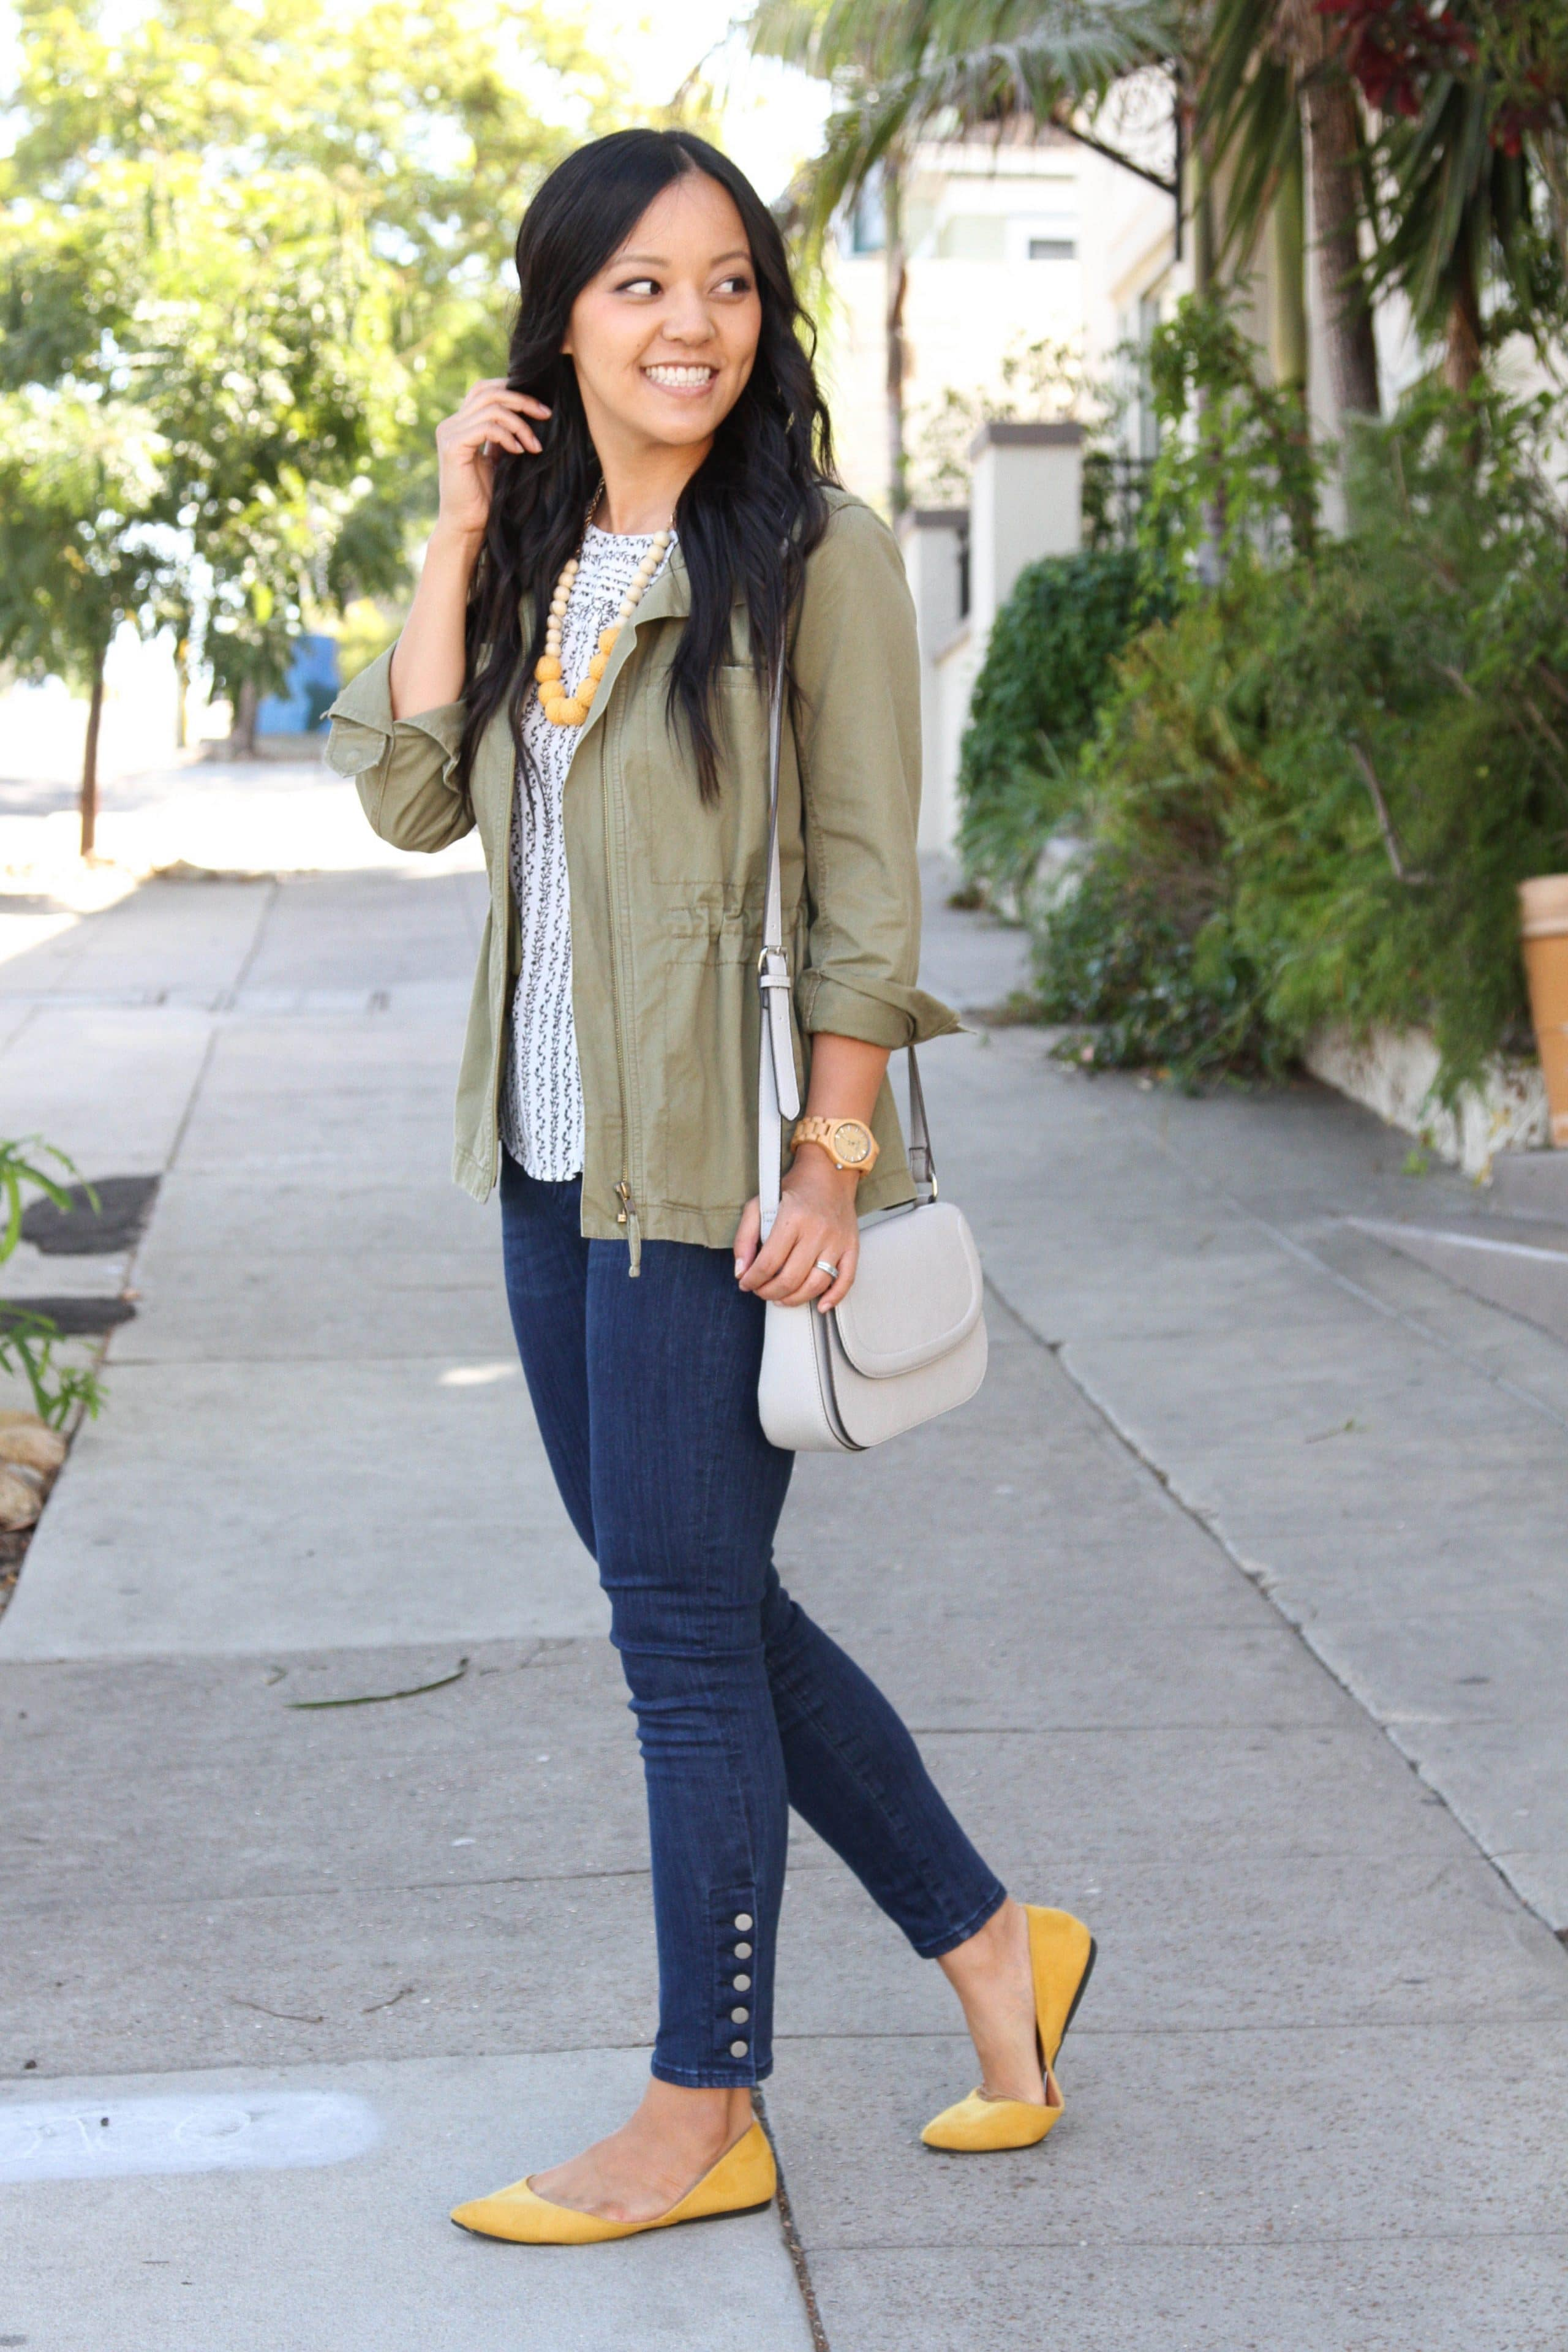 5e3f2559cdf ... Utility Jacket + Blouse + Skinny jeans + Mustard Flats + gray bag White  blouse + Skinny jeans + utility jacket + gray bag. 3. Can be worn with  trousers ...